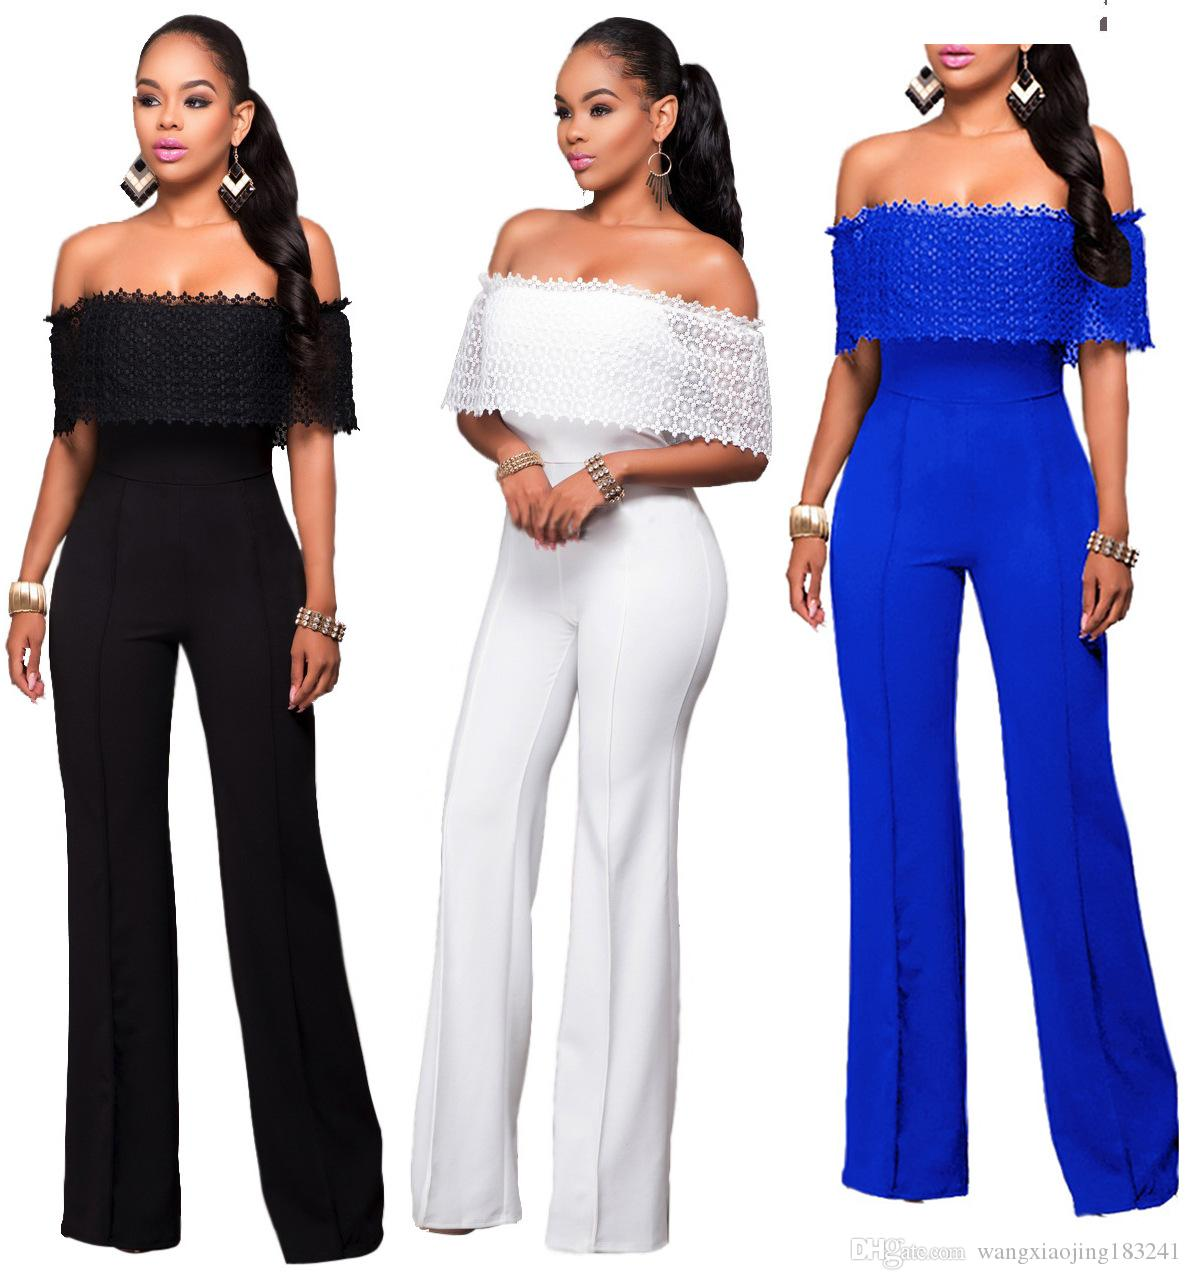 b8b5bc60487 2019 2017 New Arrivel Black White Skinny Wide Leg Jumpsuits Sexy Long Blue  Casual Off Shoulder Rompers Pants Bodycon Overalls From Wangxiaojing183241